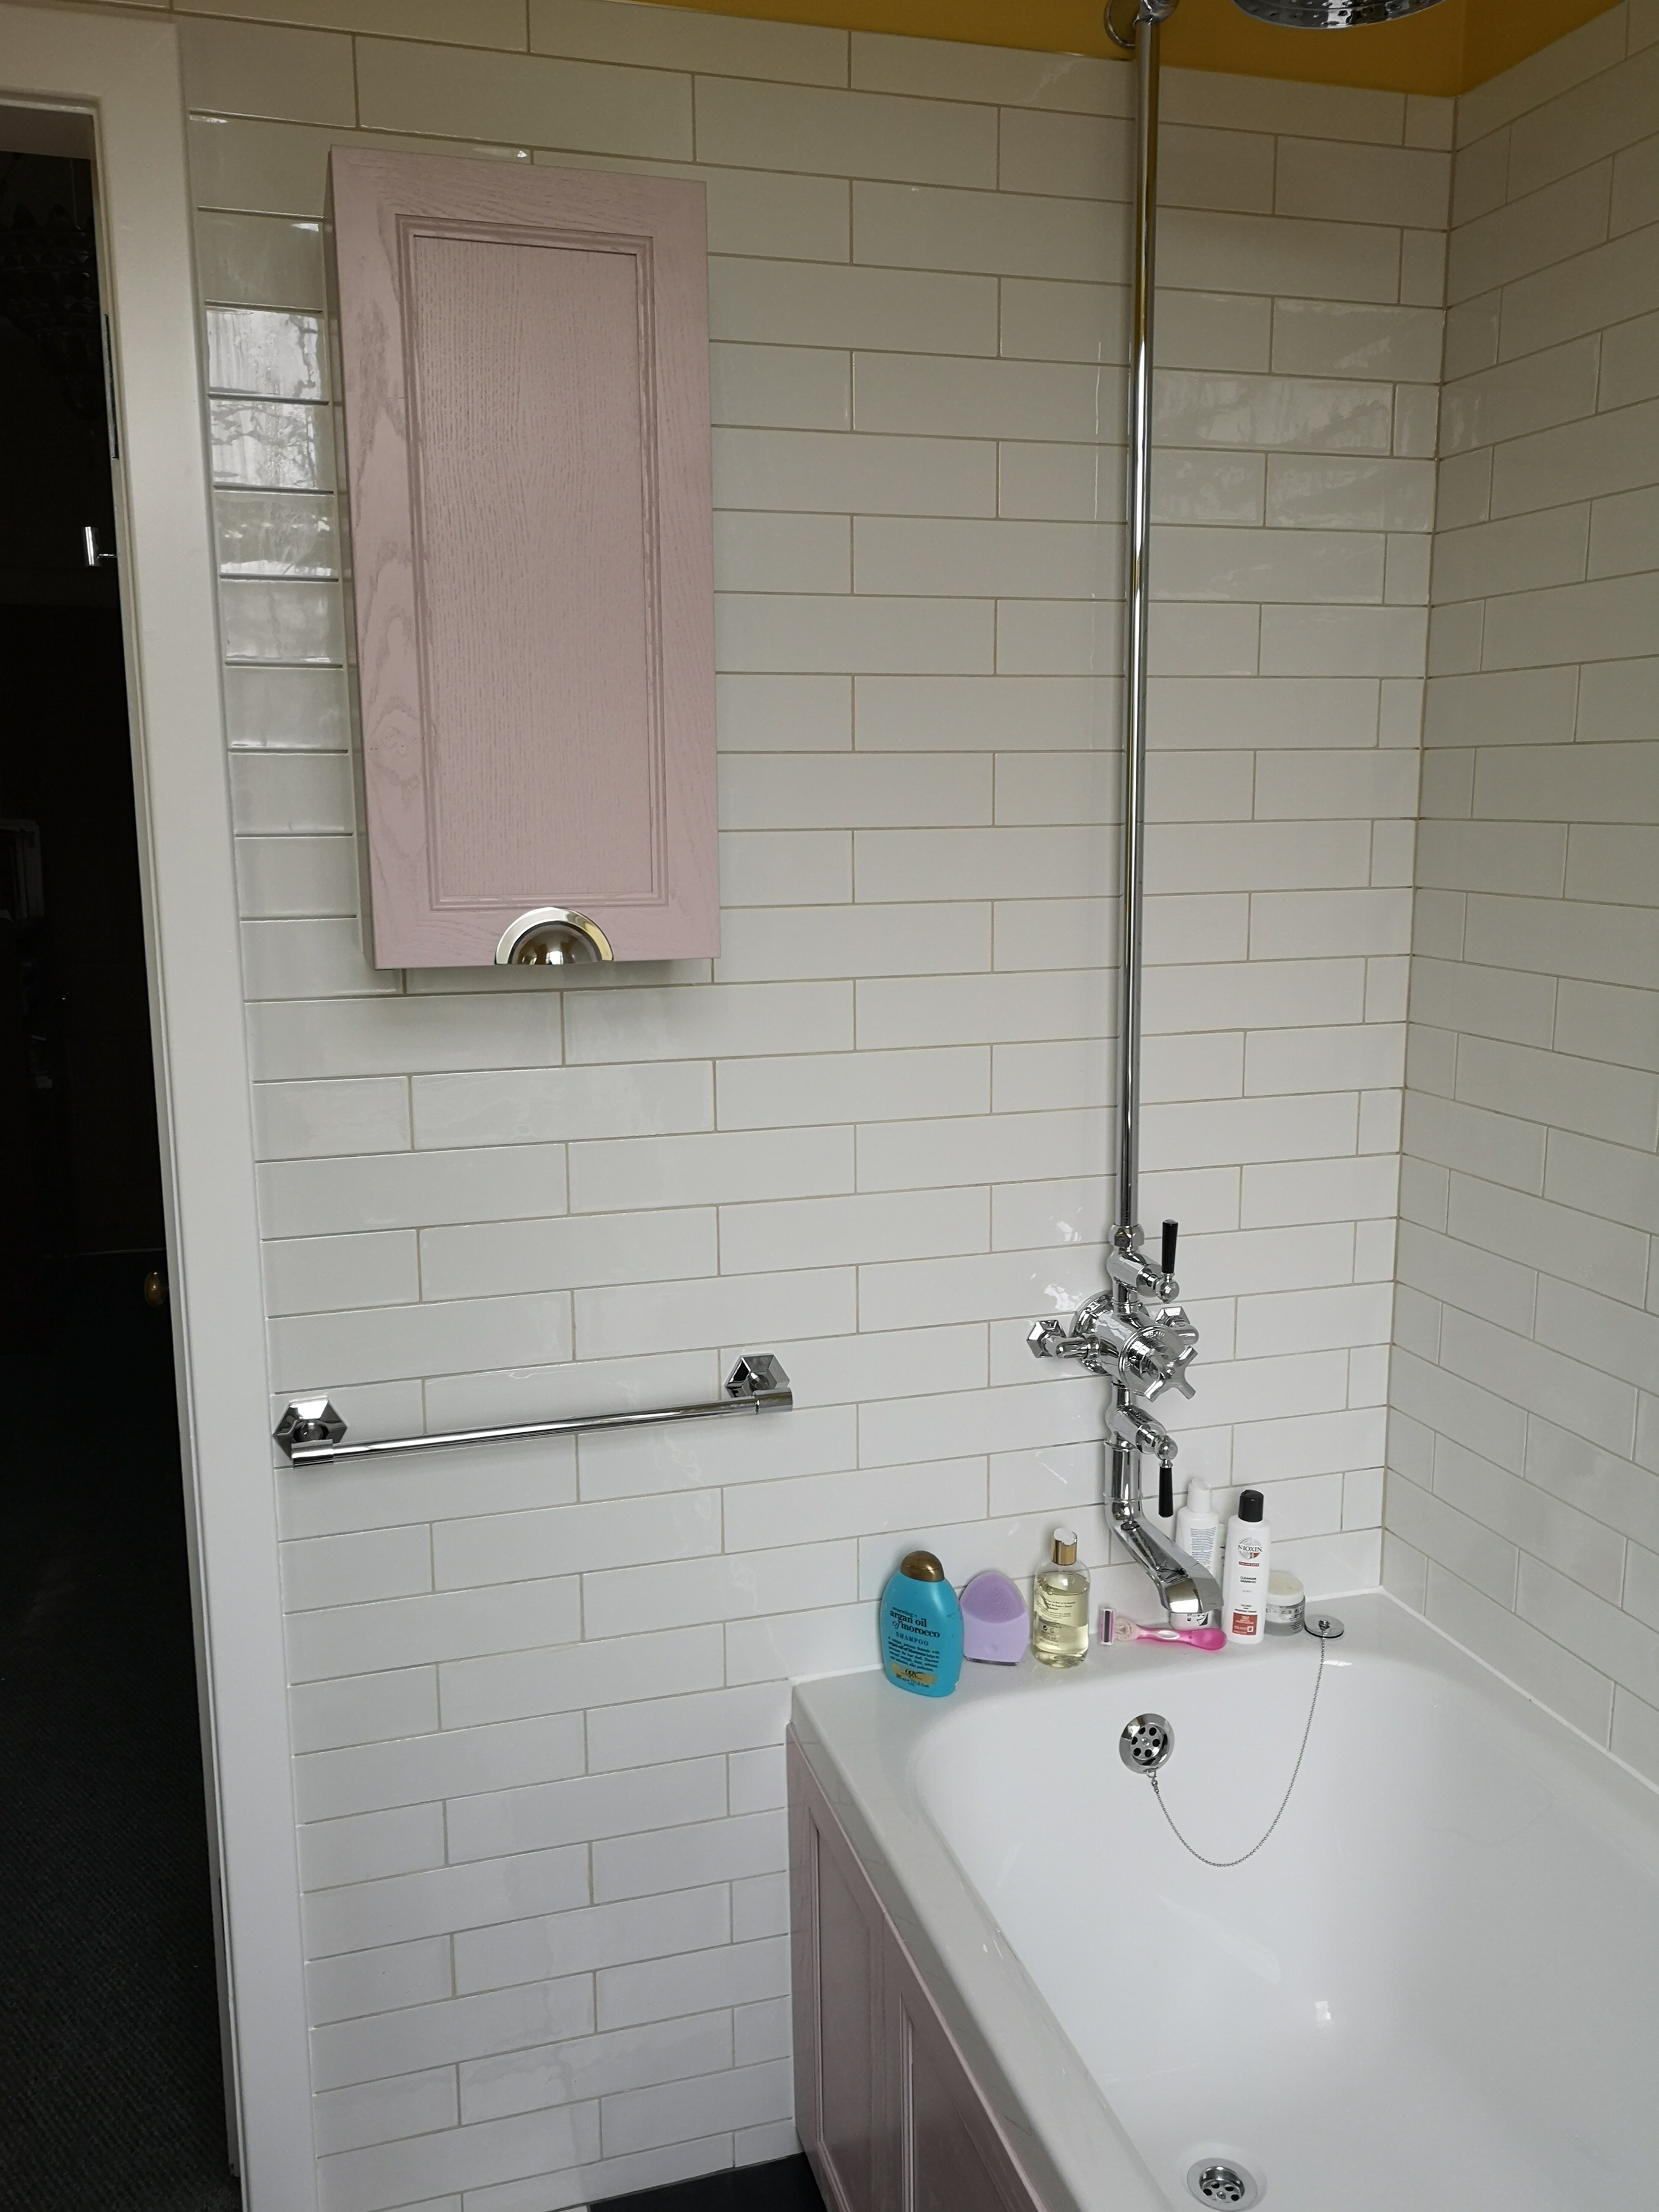 Exposed shower valve with white subway tiles and chequered floor.